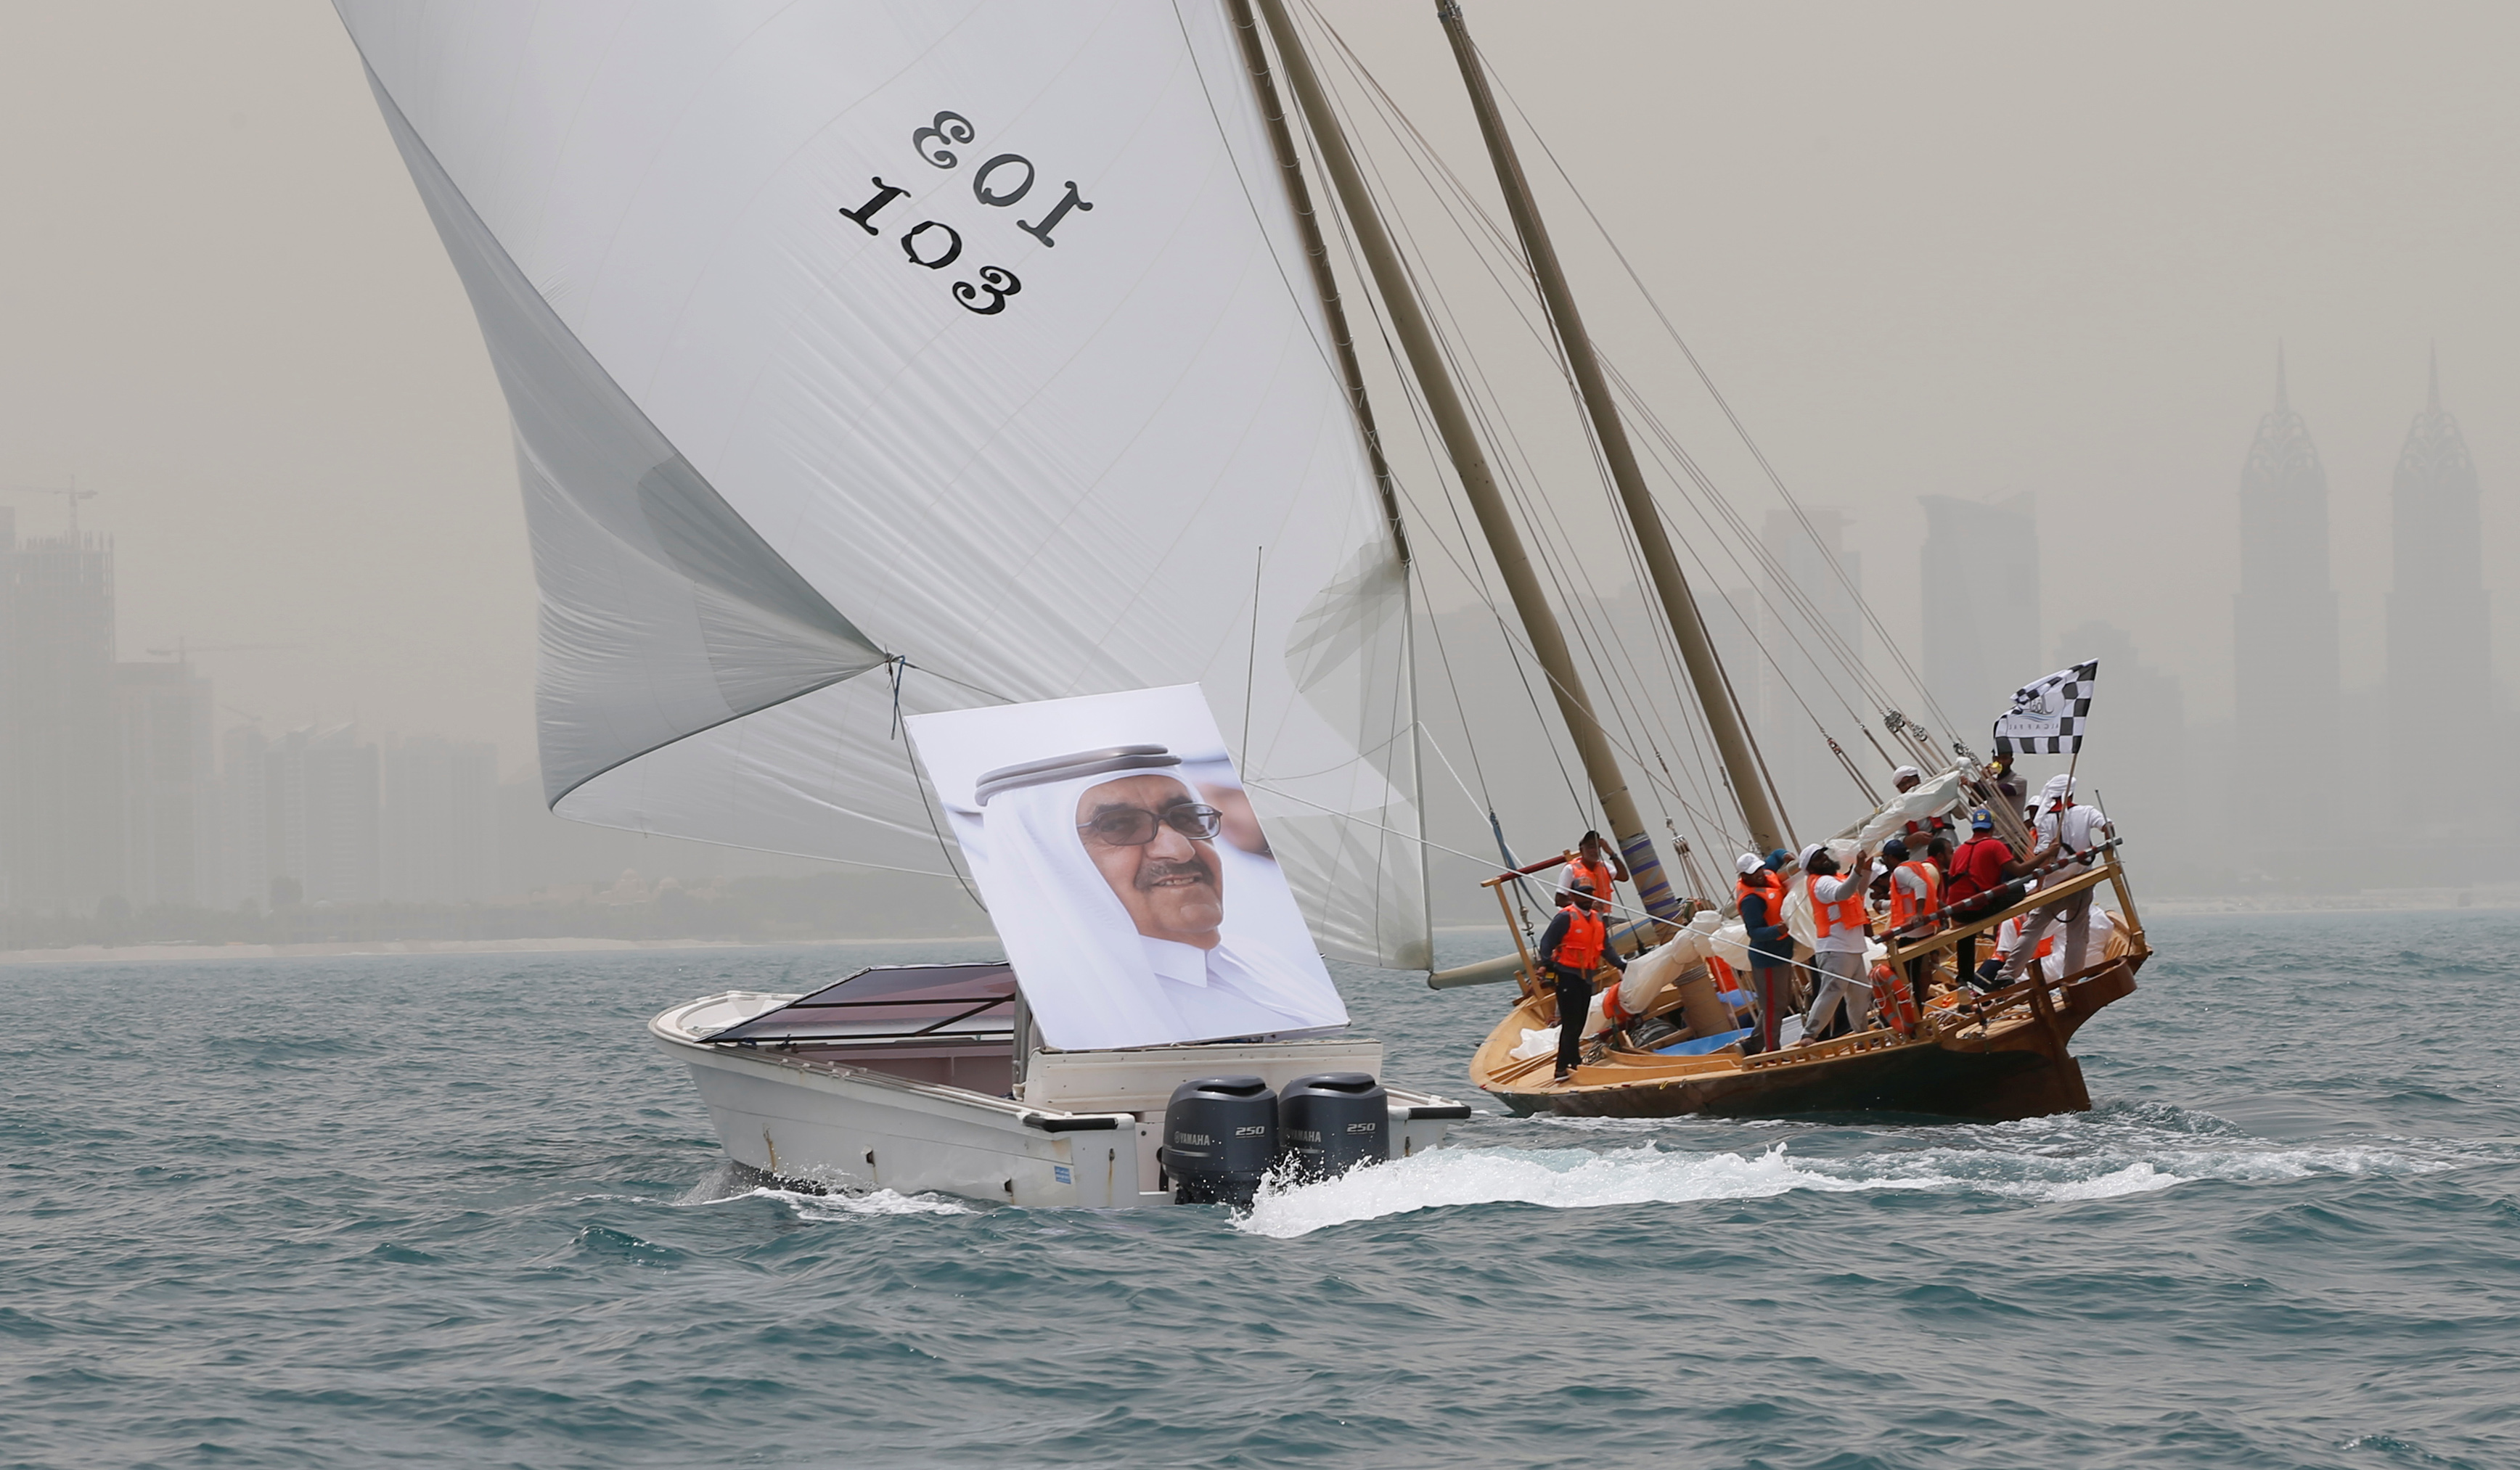 The Closing Race Today marks the story of the 29th Al Gaffal